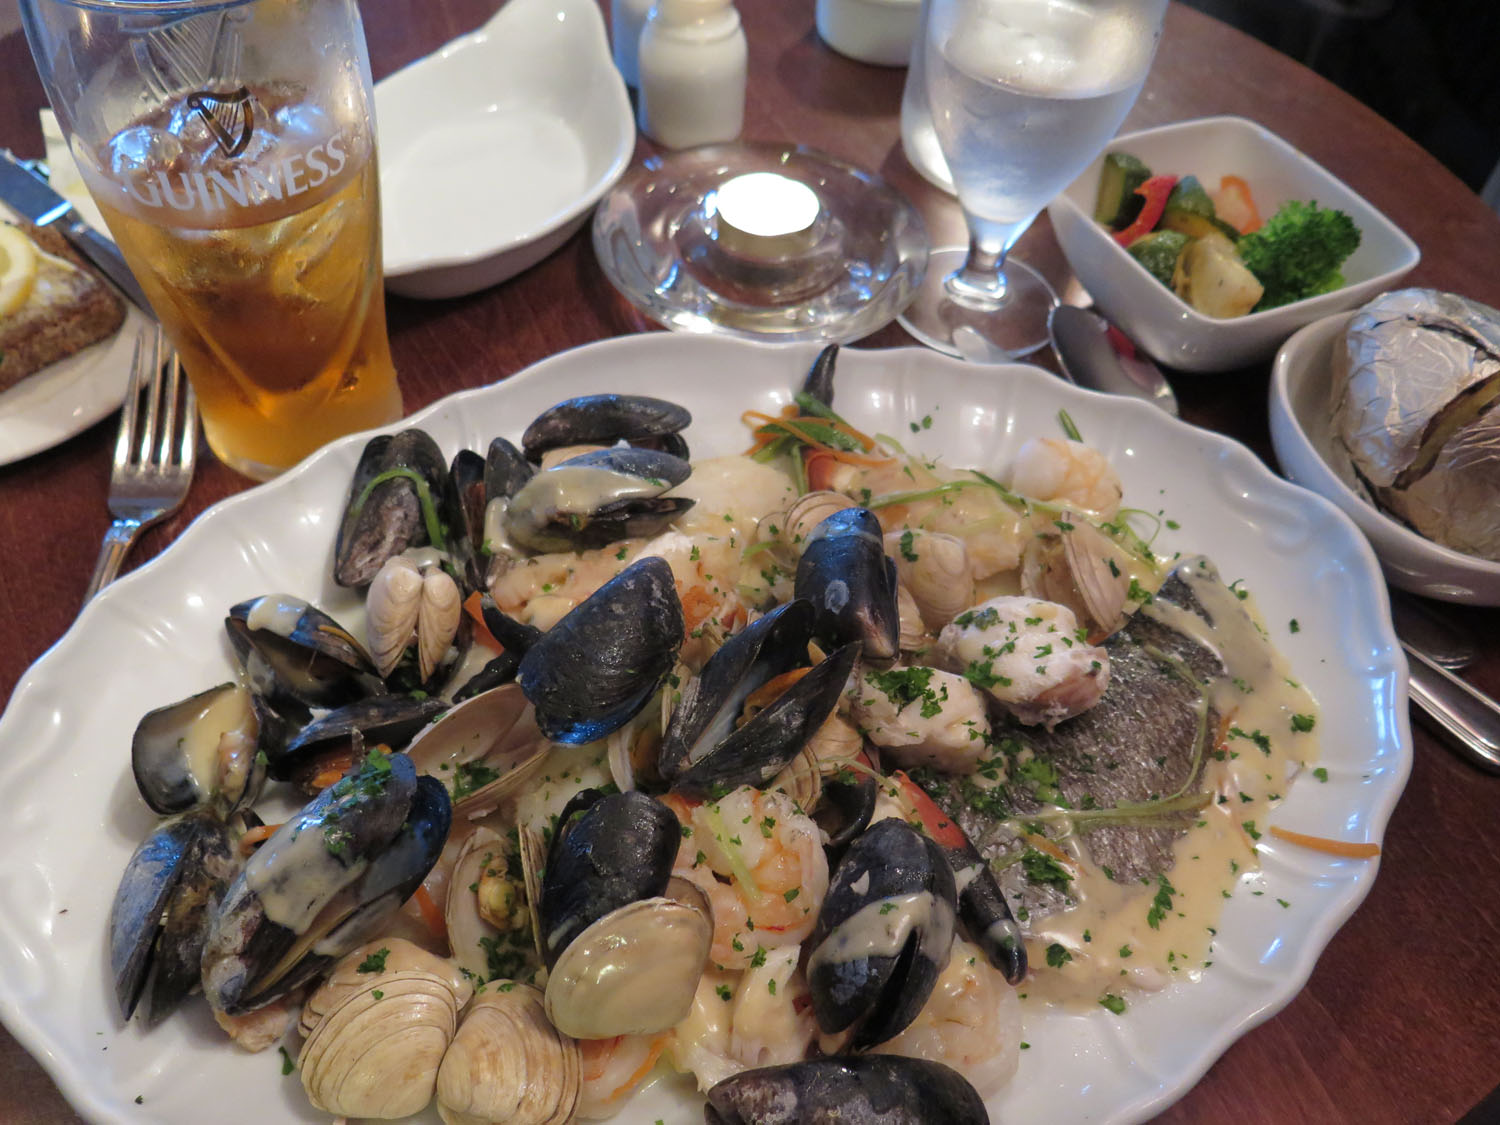 Ireland-Food-And-Drink-Seafood-Platter